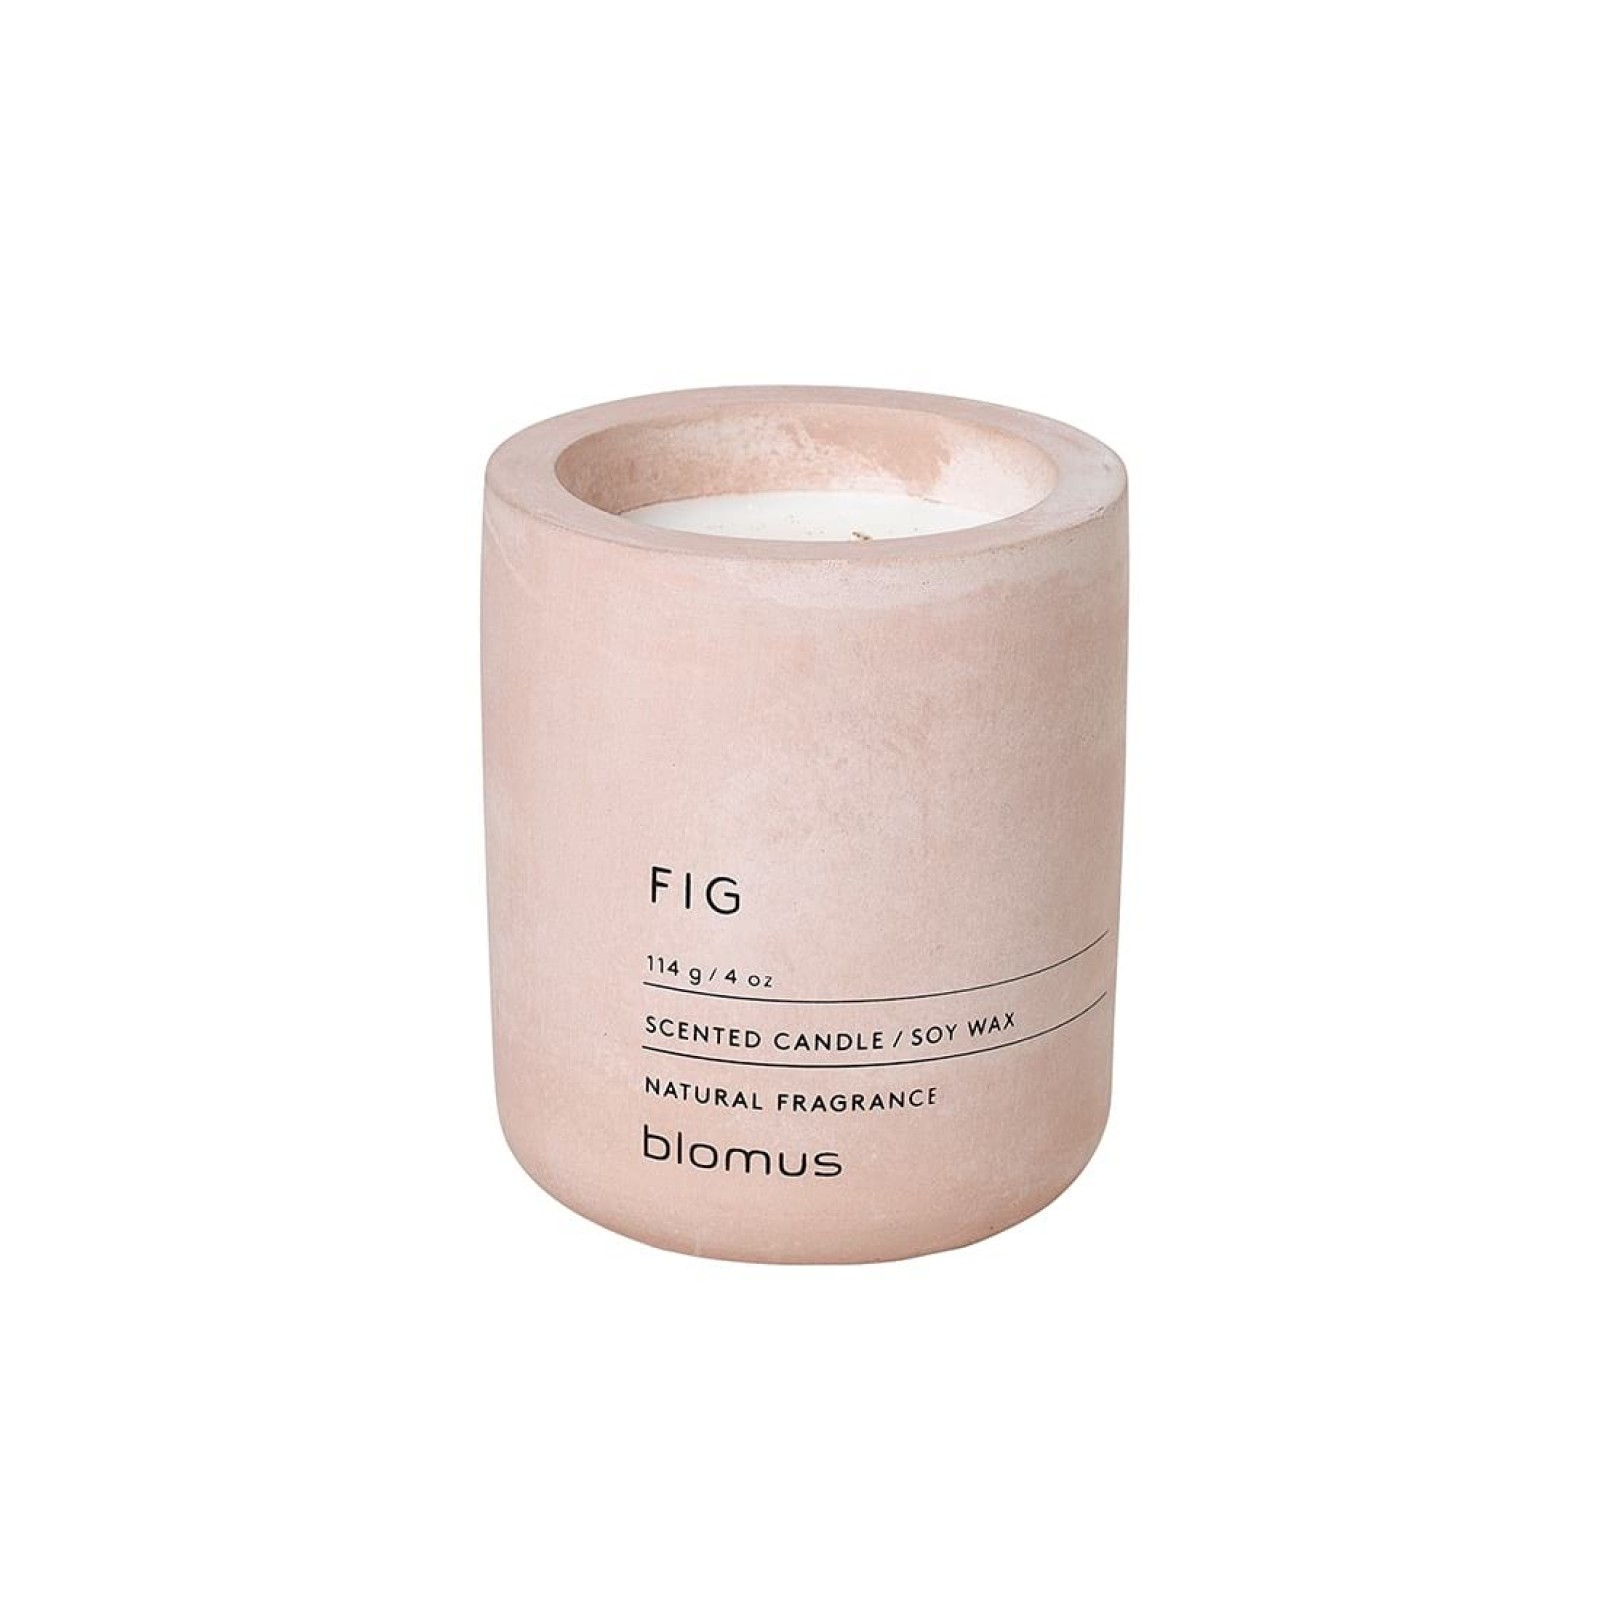 Scented Candle FRAGA S Fig - Blomus